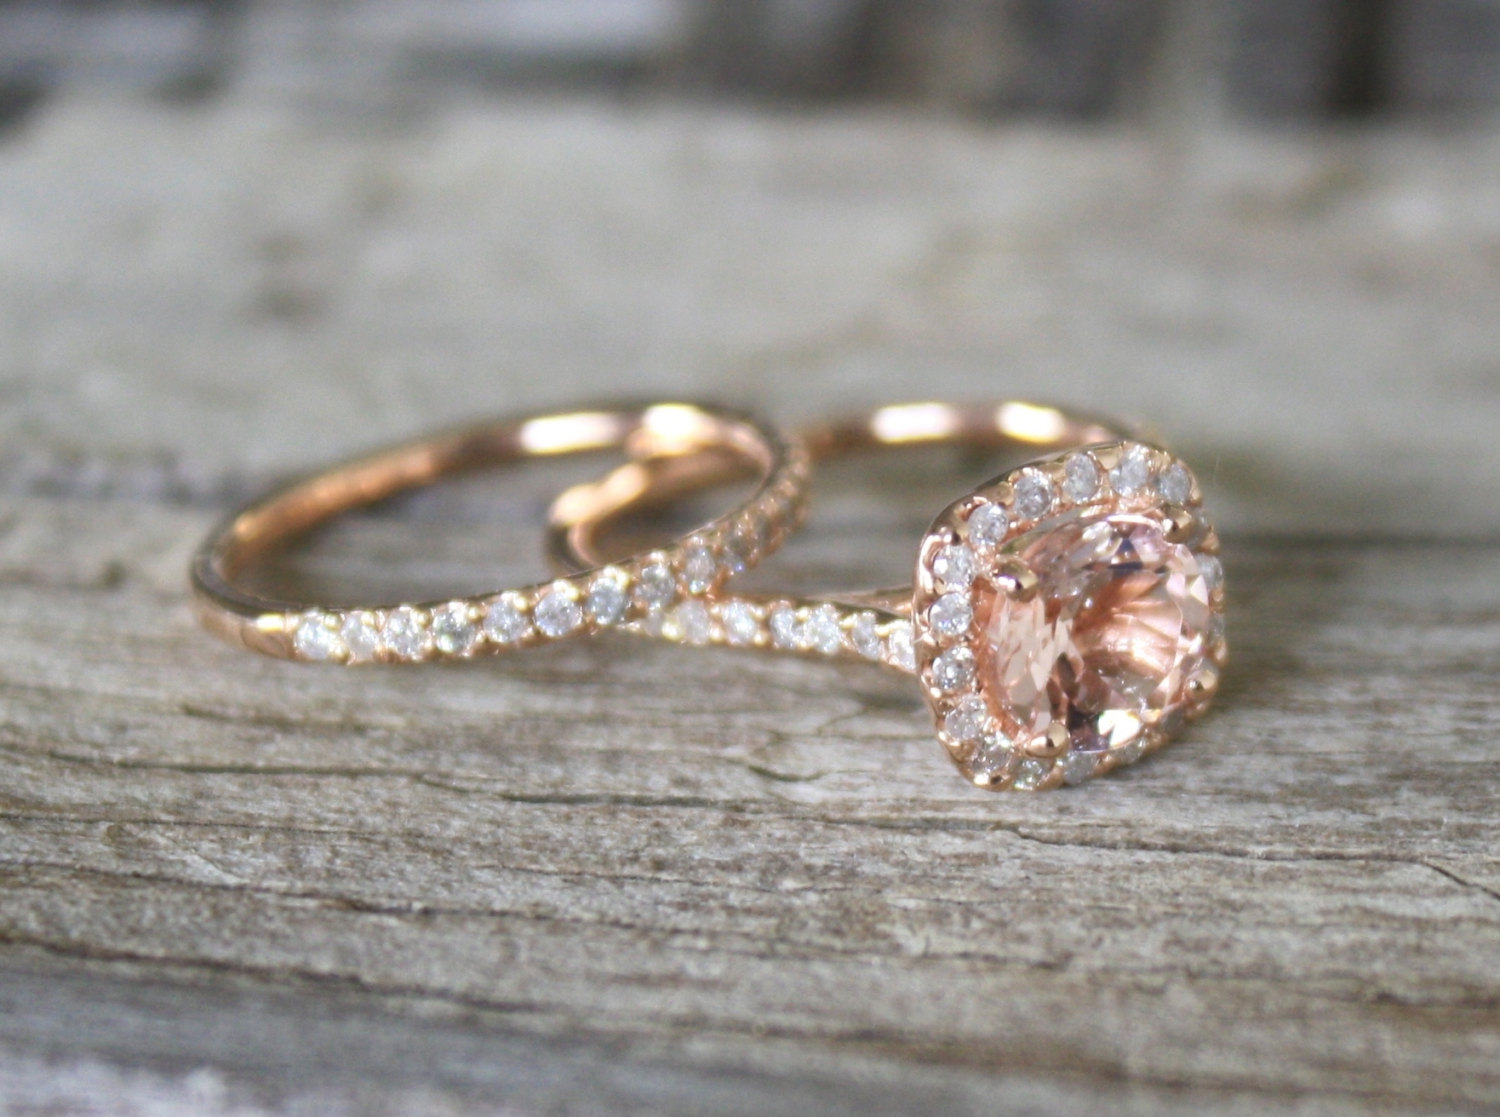 Etsy Engagement Rings Uk: morganite etsy engagement rings gold